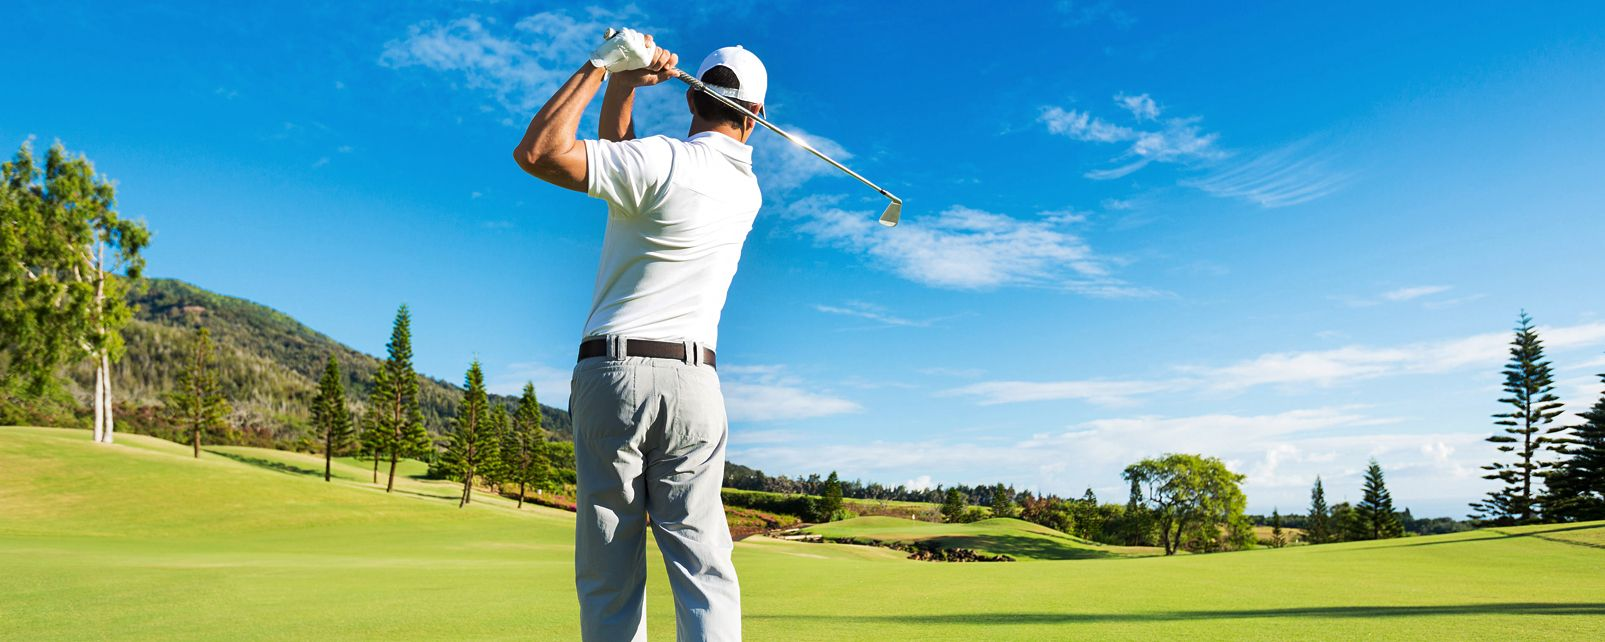 Golfing , Golf swing , Portugal